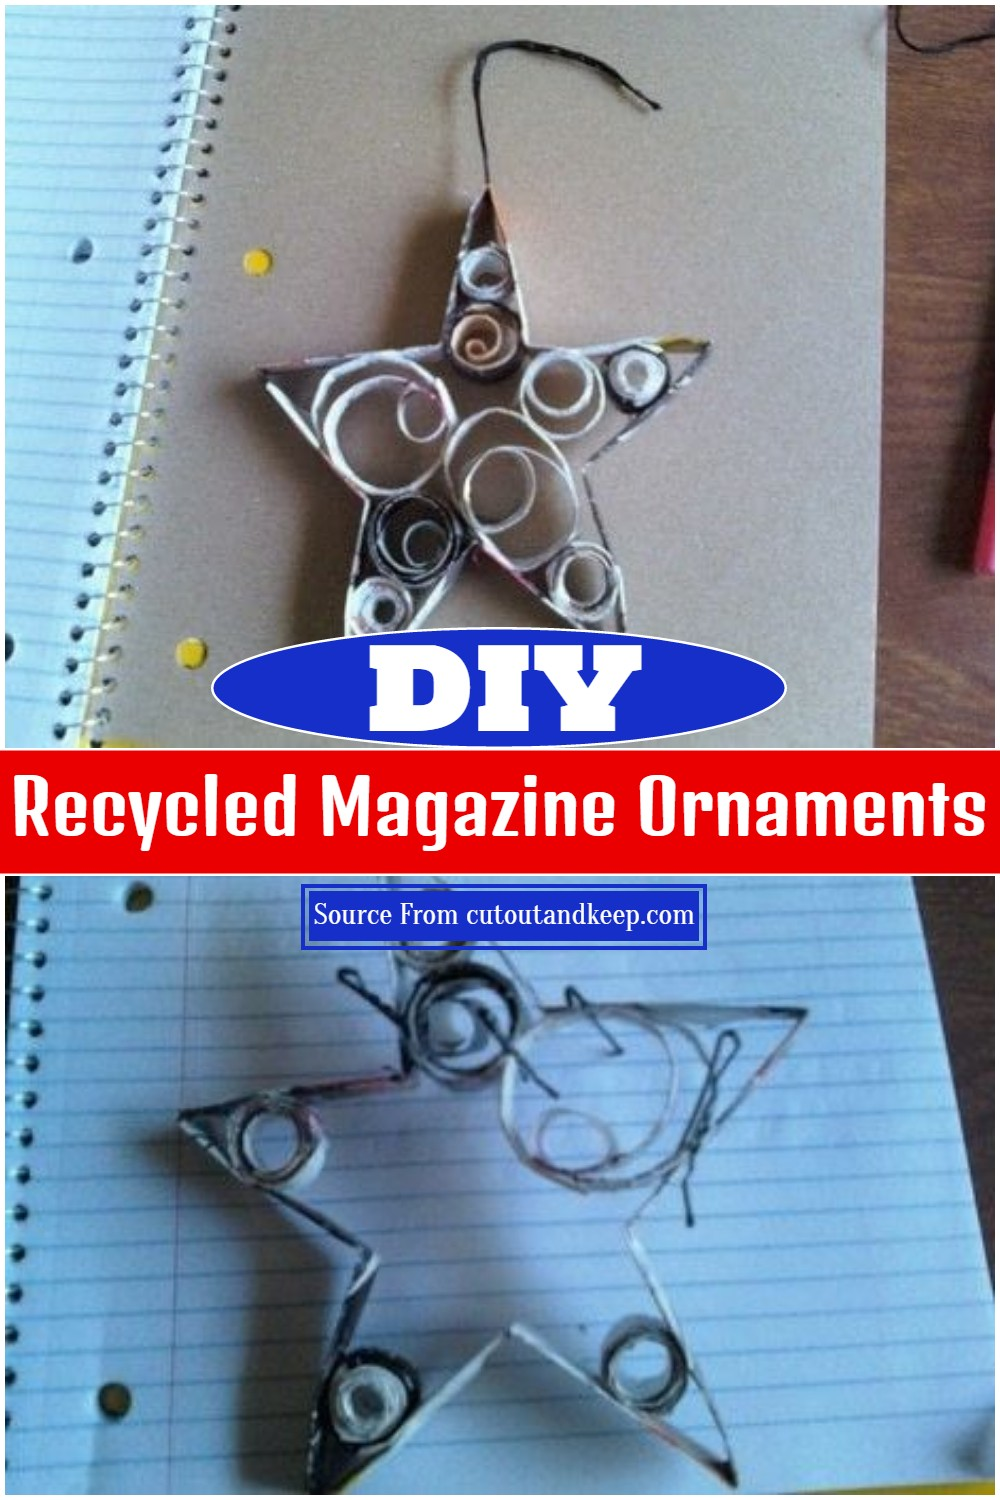 DIY Recycled Magazine Ornaments